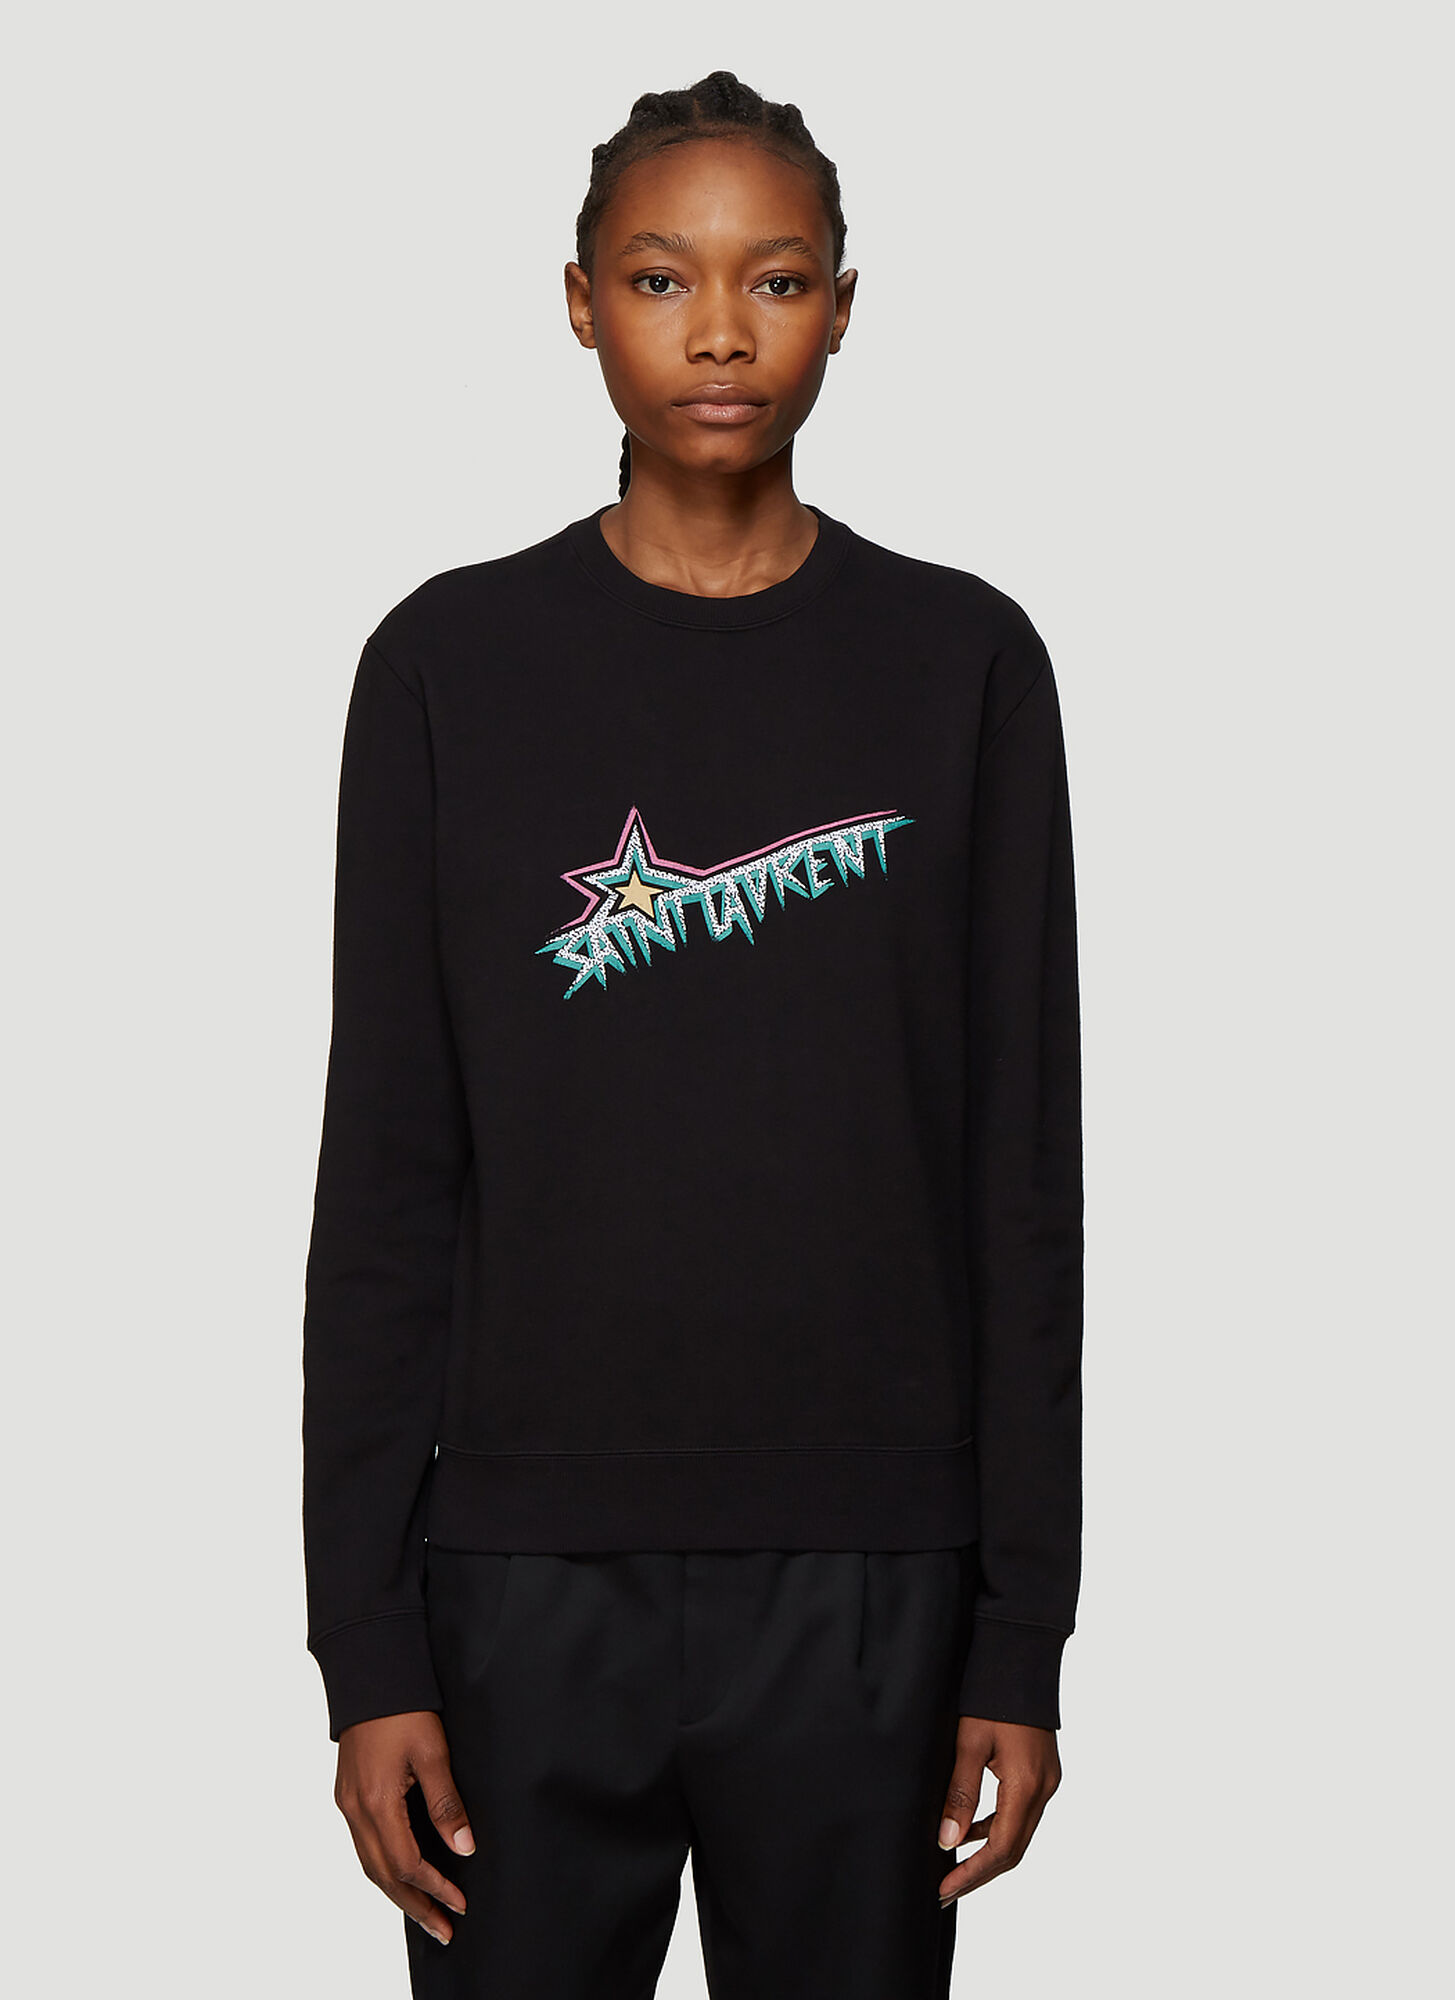 Saint Laurent Logo Sweatshirt in Black